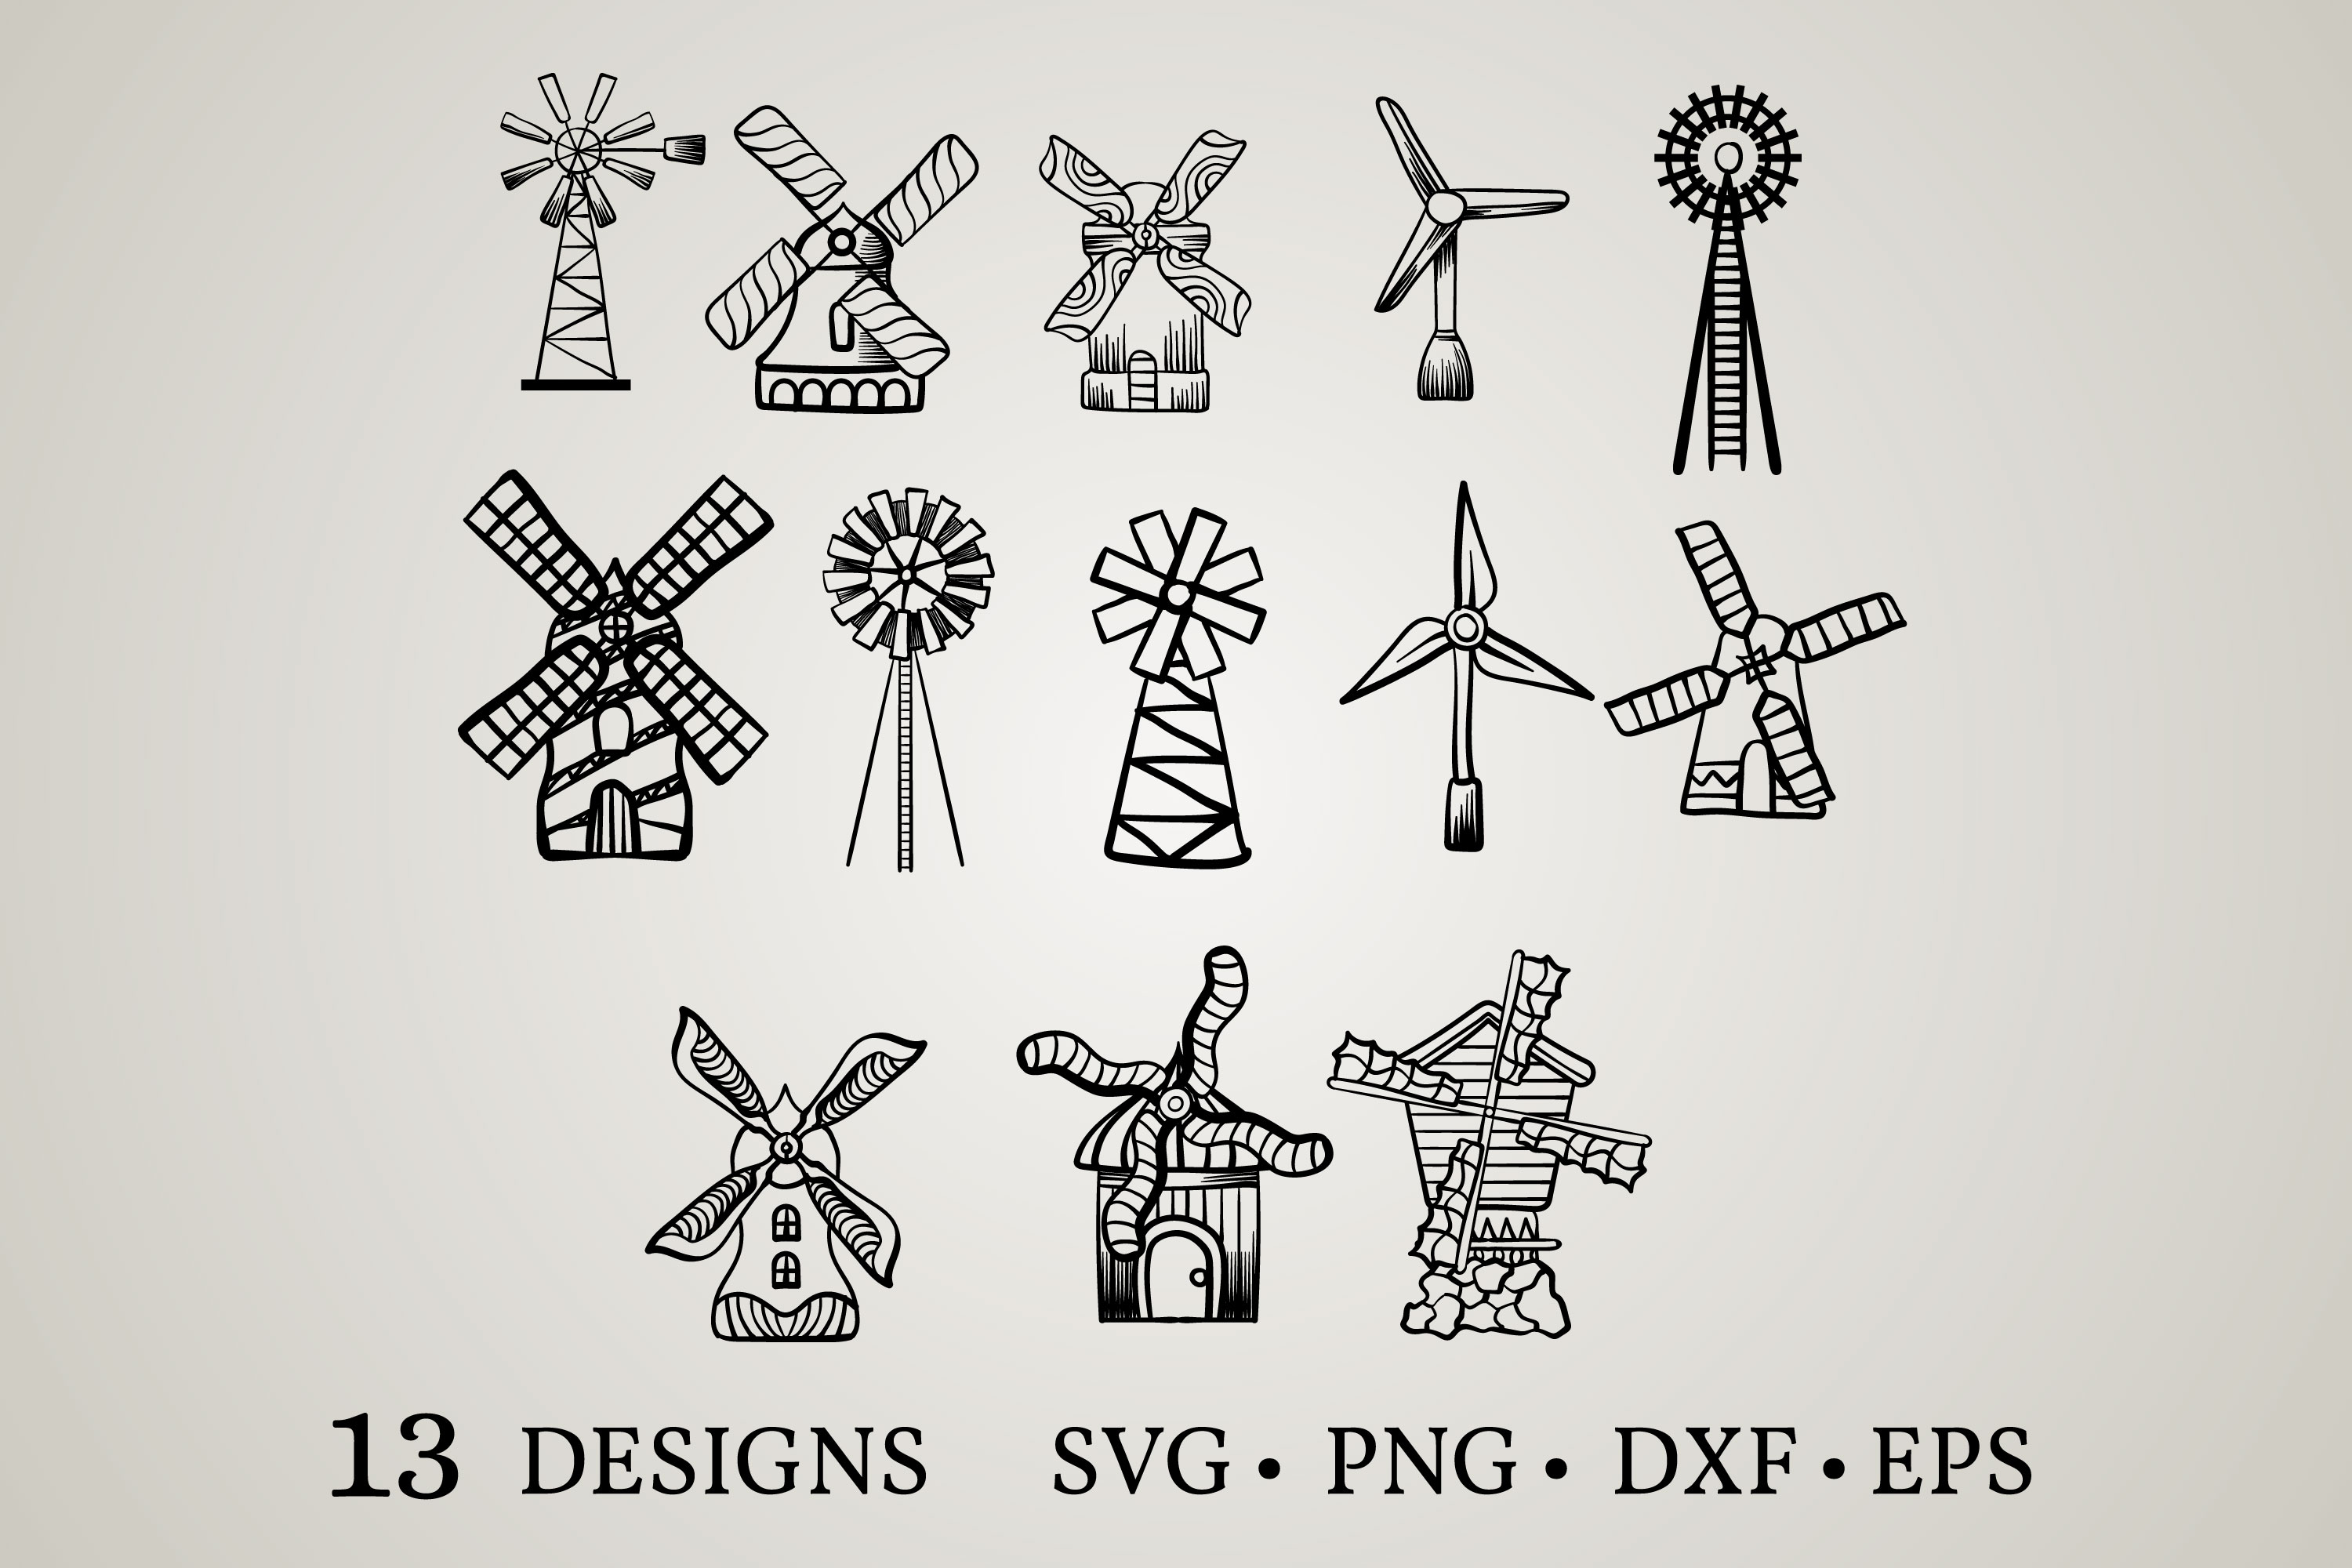 Download Free Windmill Bundle Graphic By Euphoria Design Creative Fabrica for Cricut Explore, Silhouette and other cutting machines.